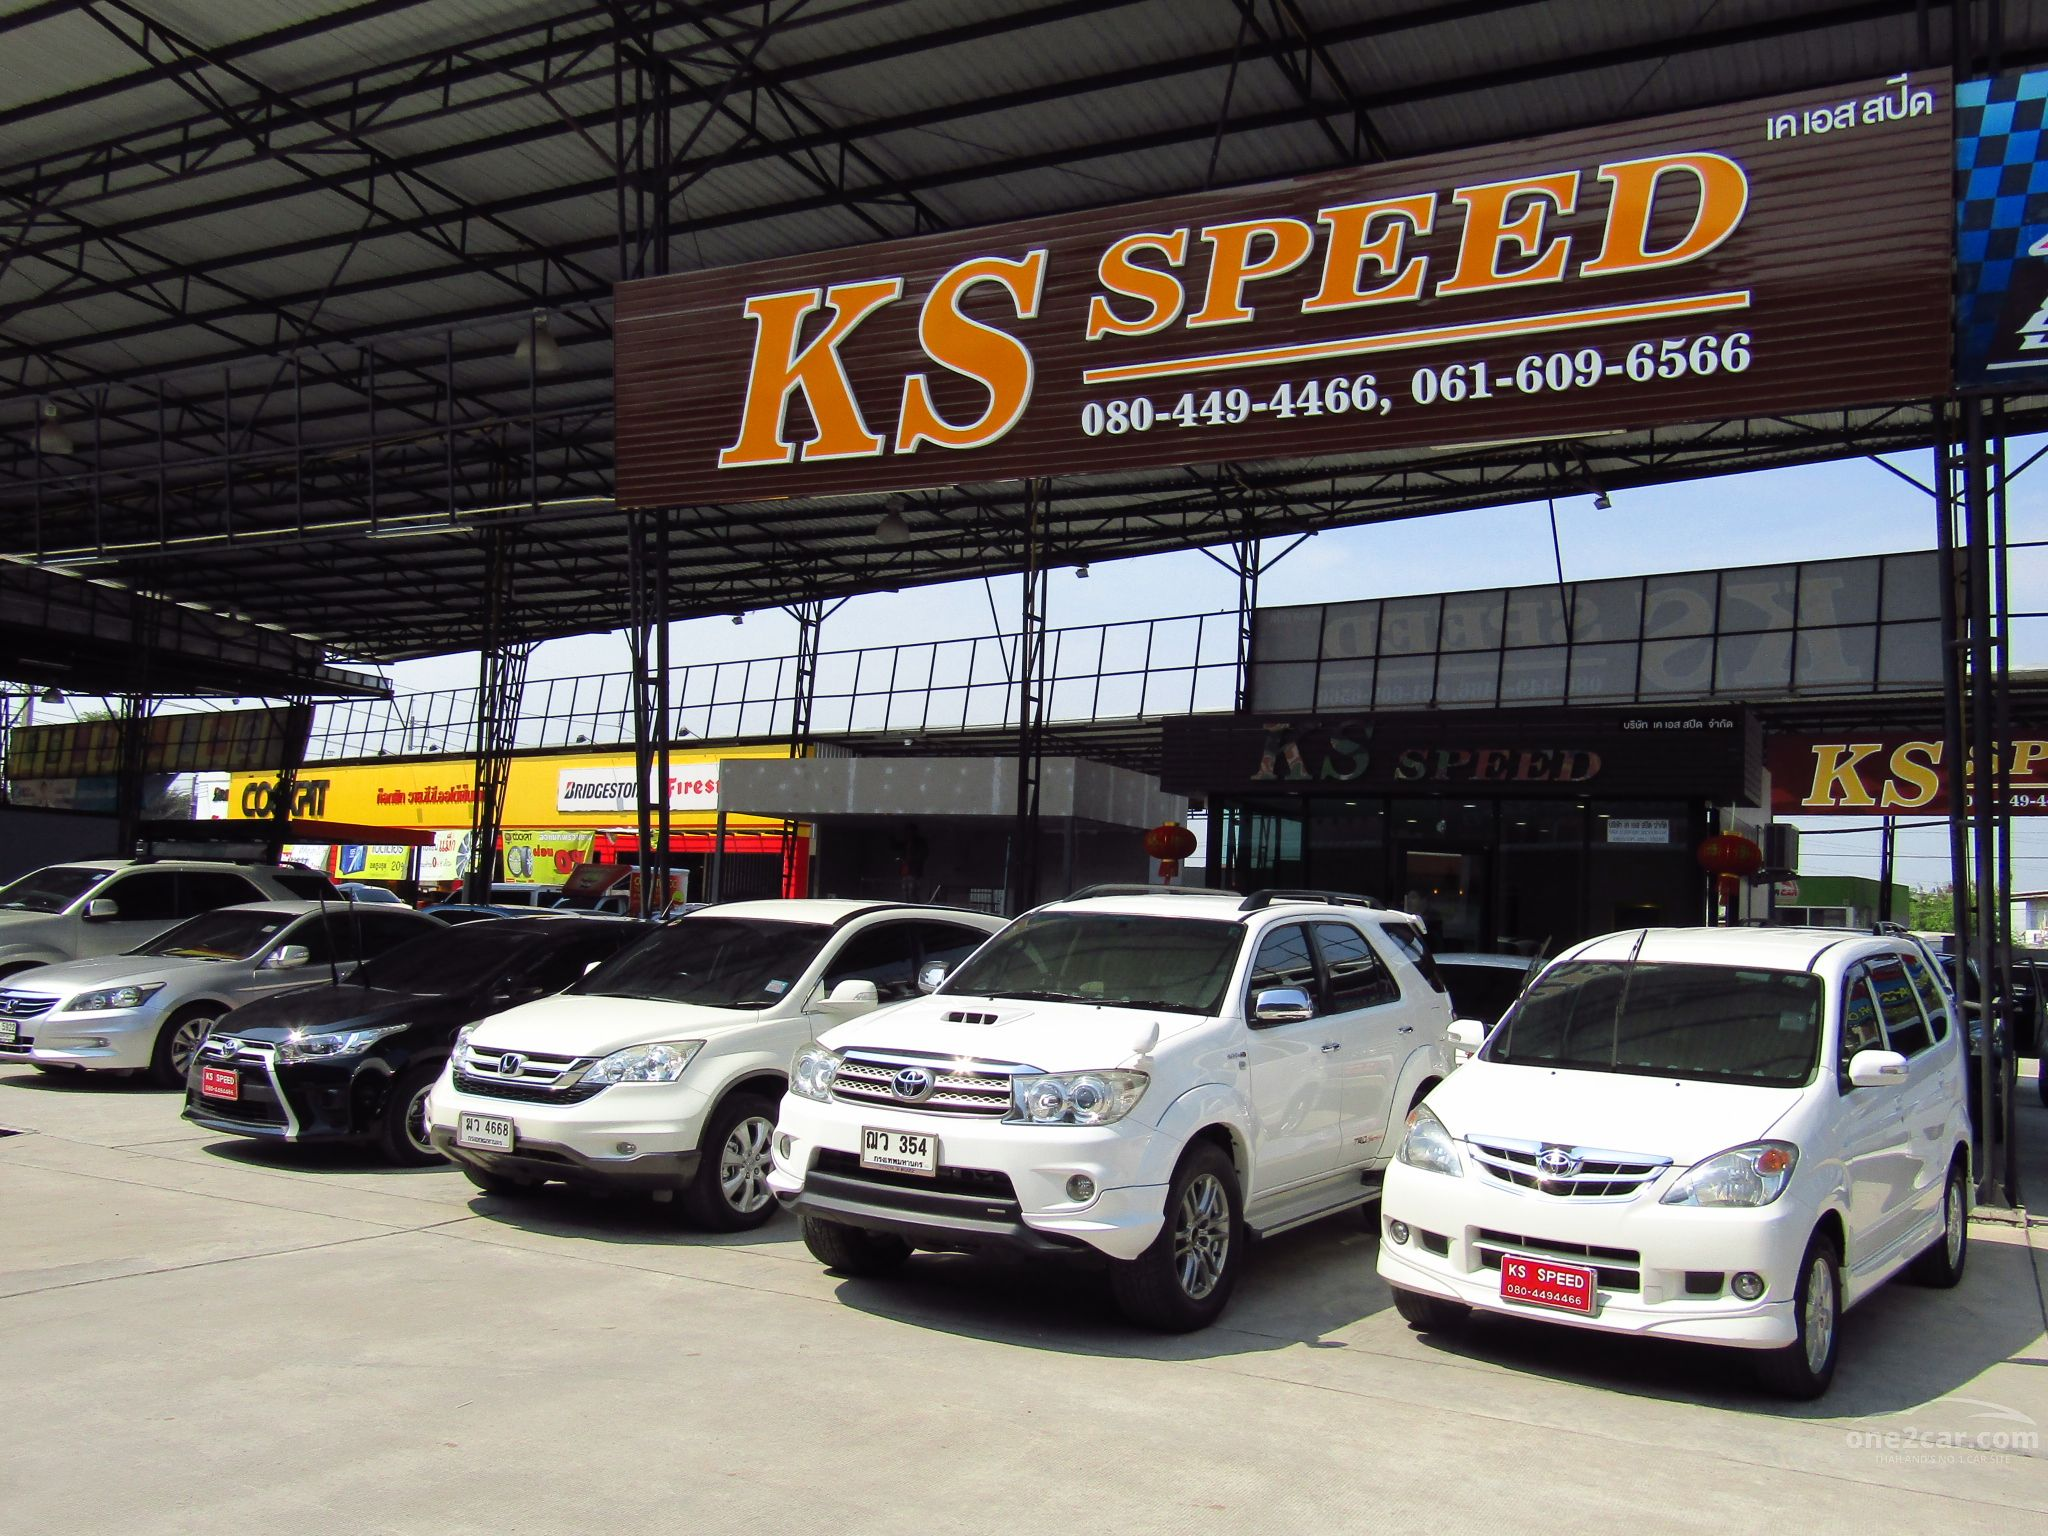 KS SPEED